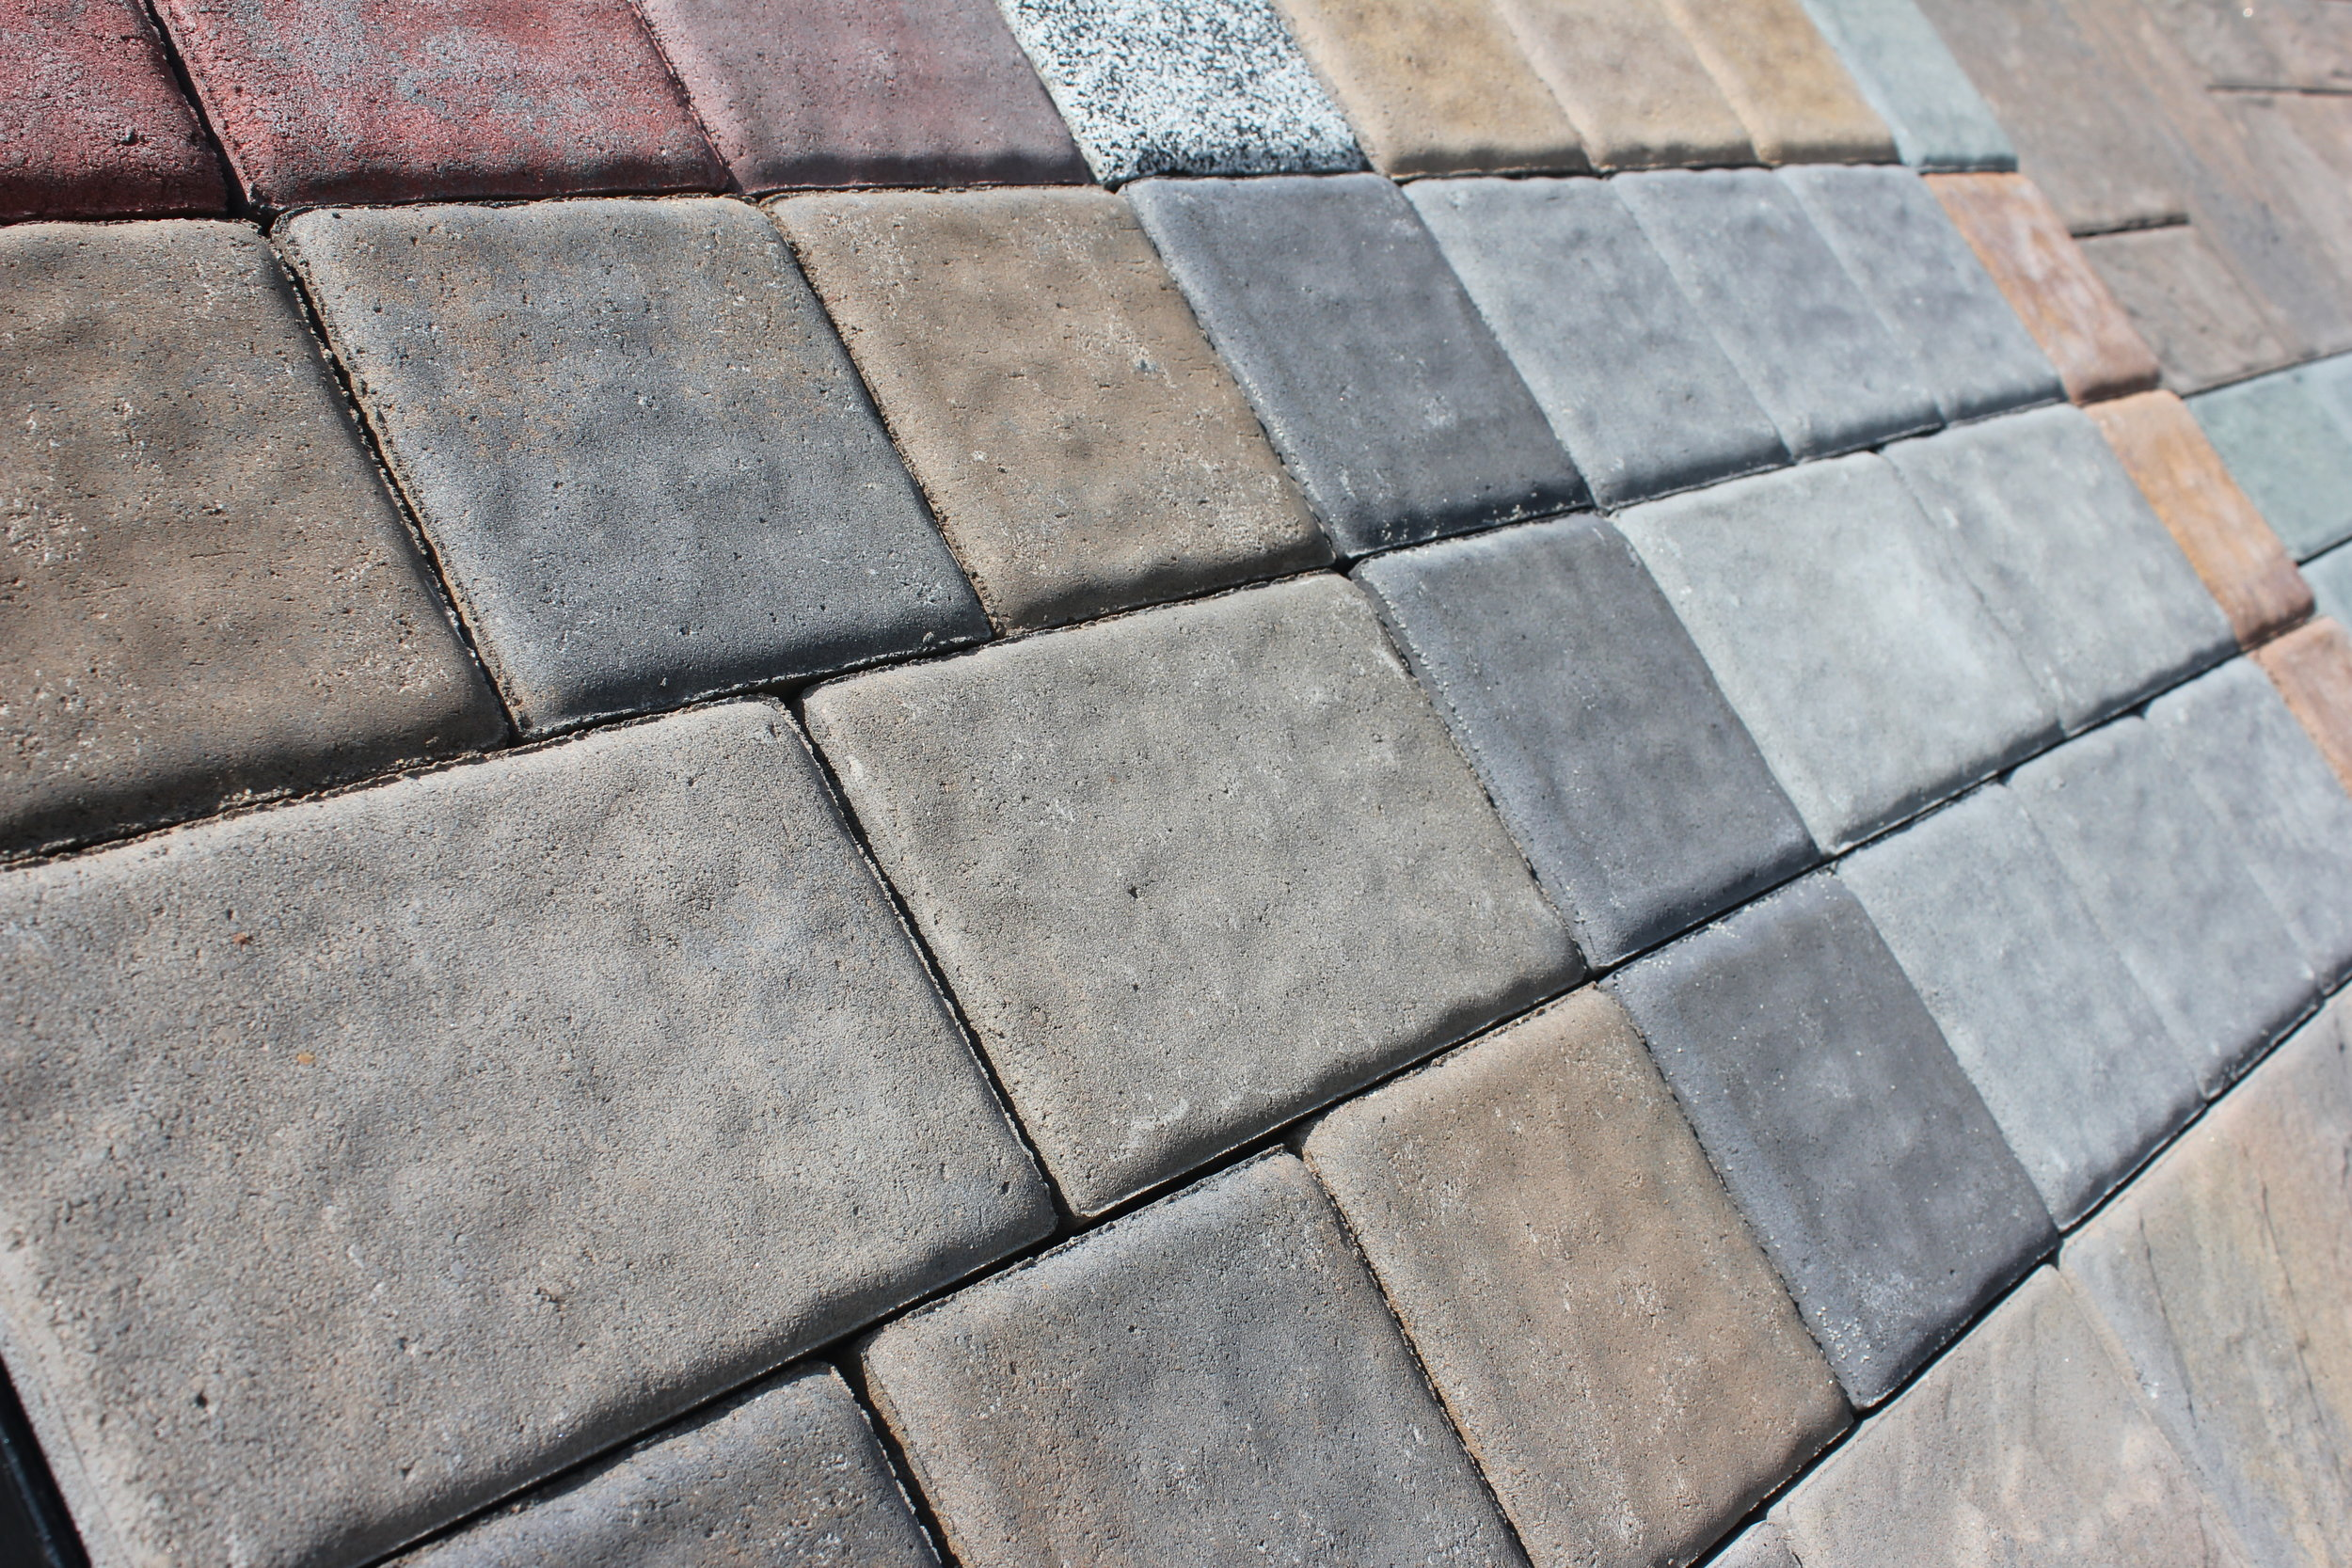 PAVERS   Our Ipswich location sells pavers from Belgard and Cambridge, with many styles stocked regularly. Please call or stop by for more details.